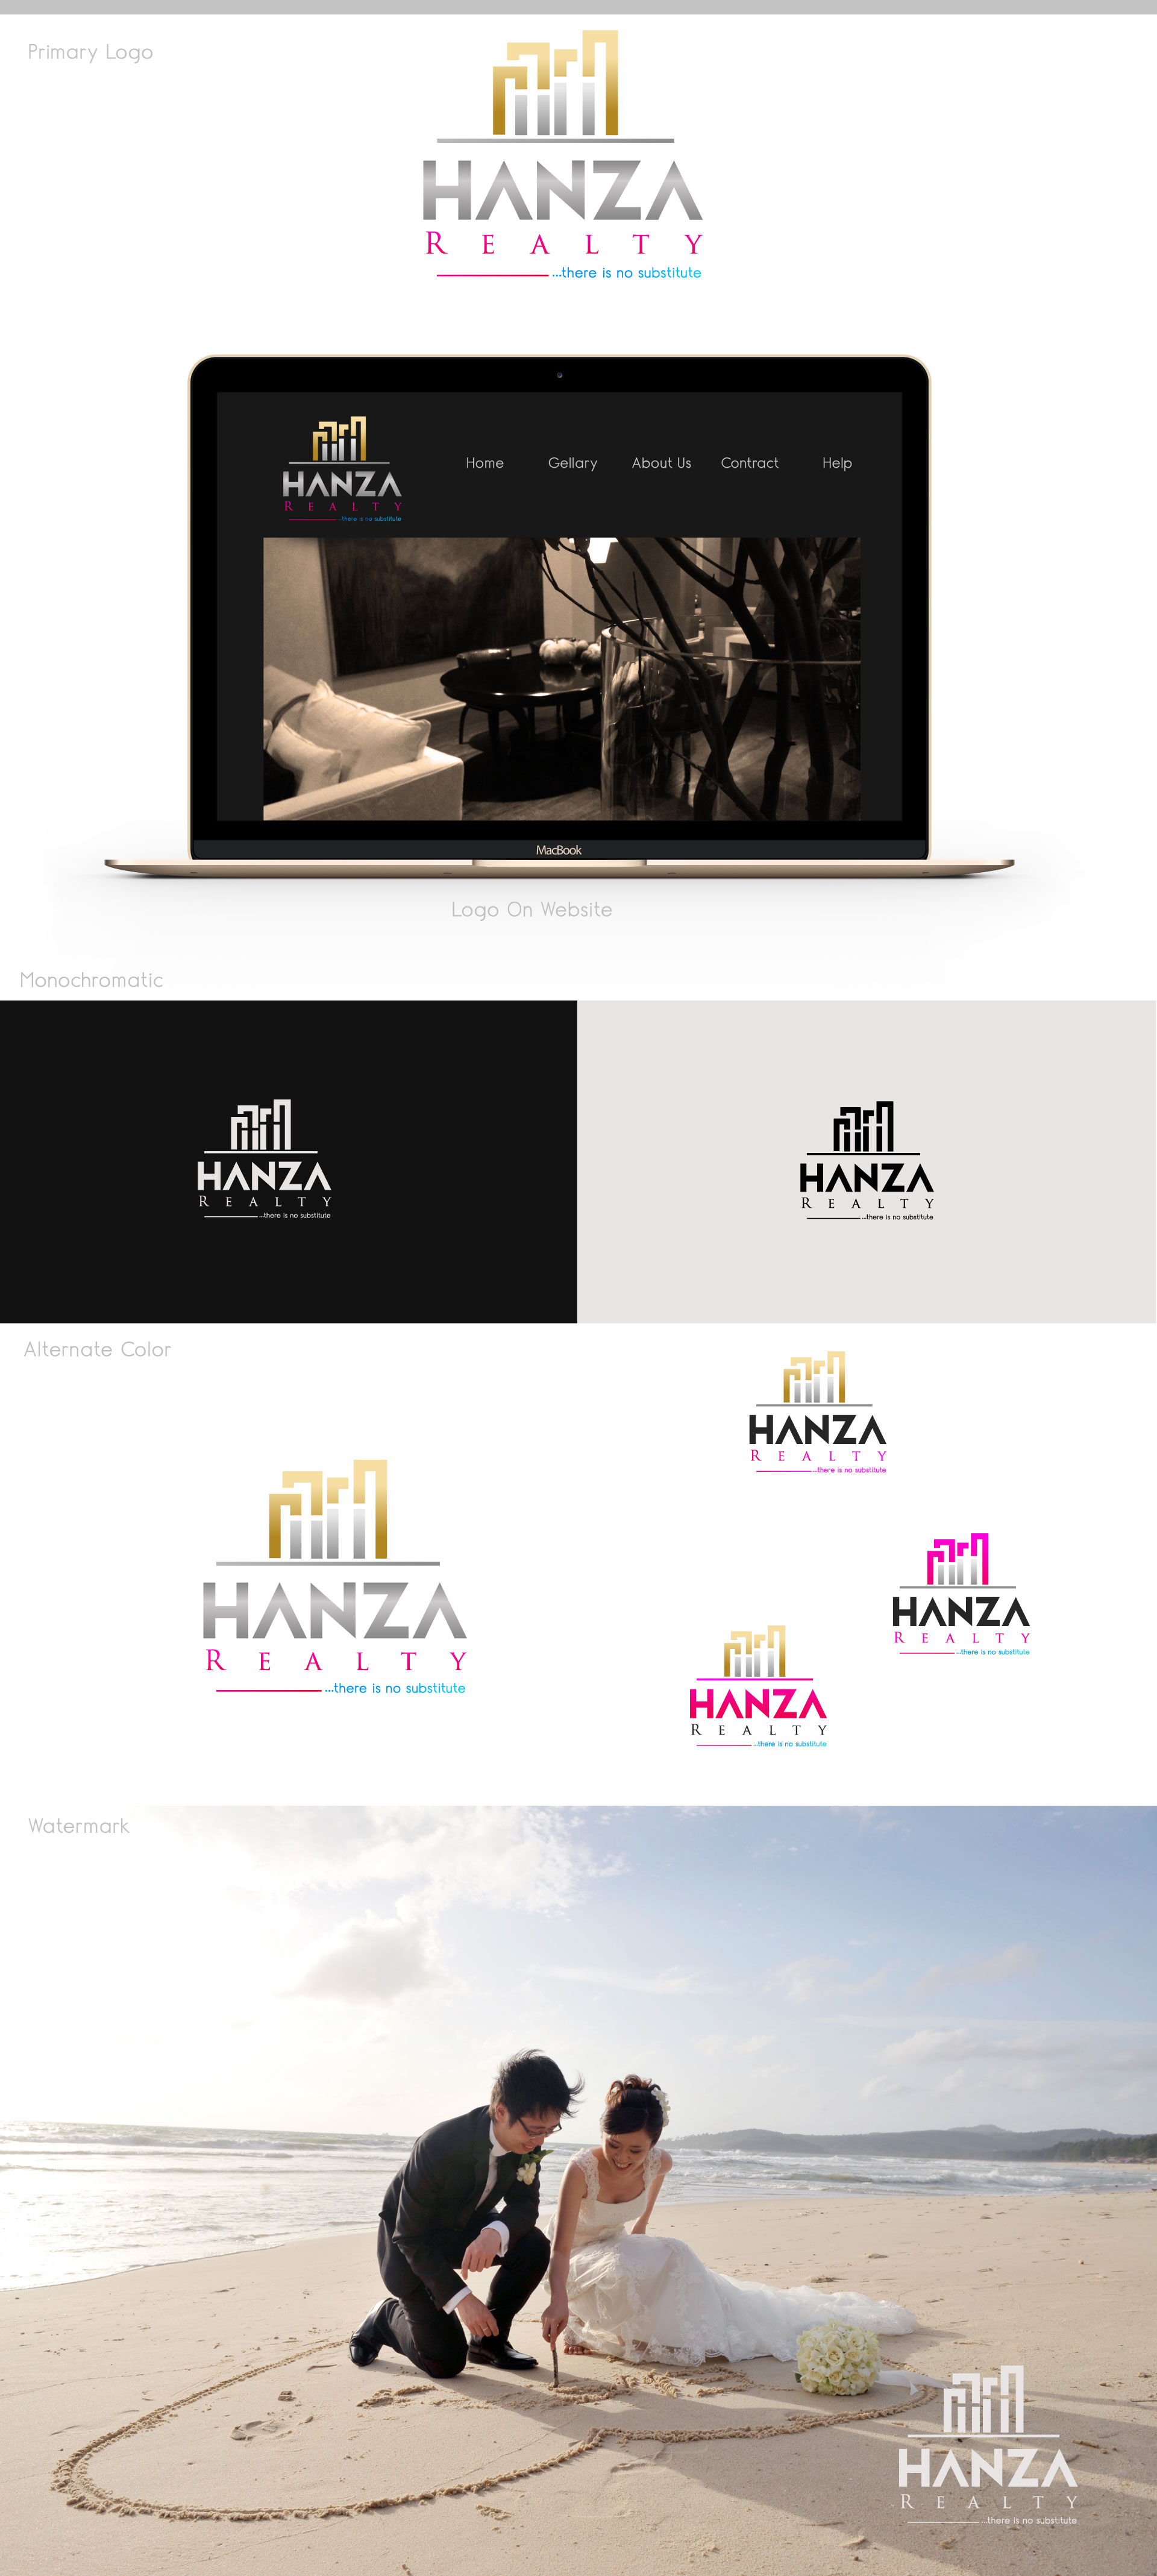 Logo Design by M h Rubel - Entry No. 355 in the Logo Design Contest Logo Design for Hanza Realty.